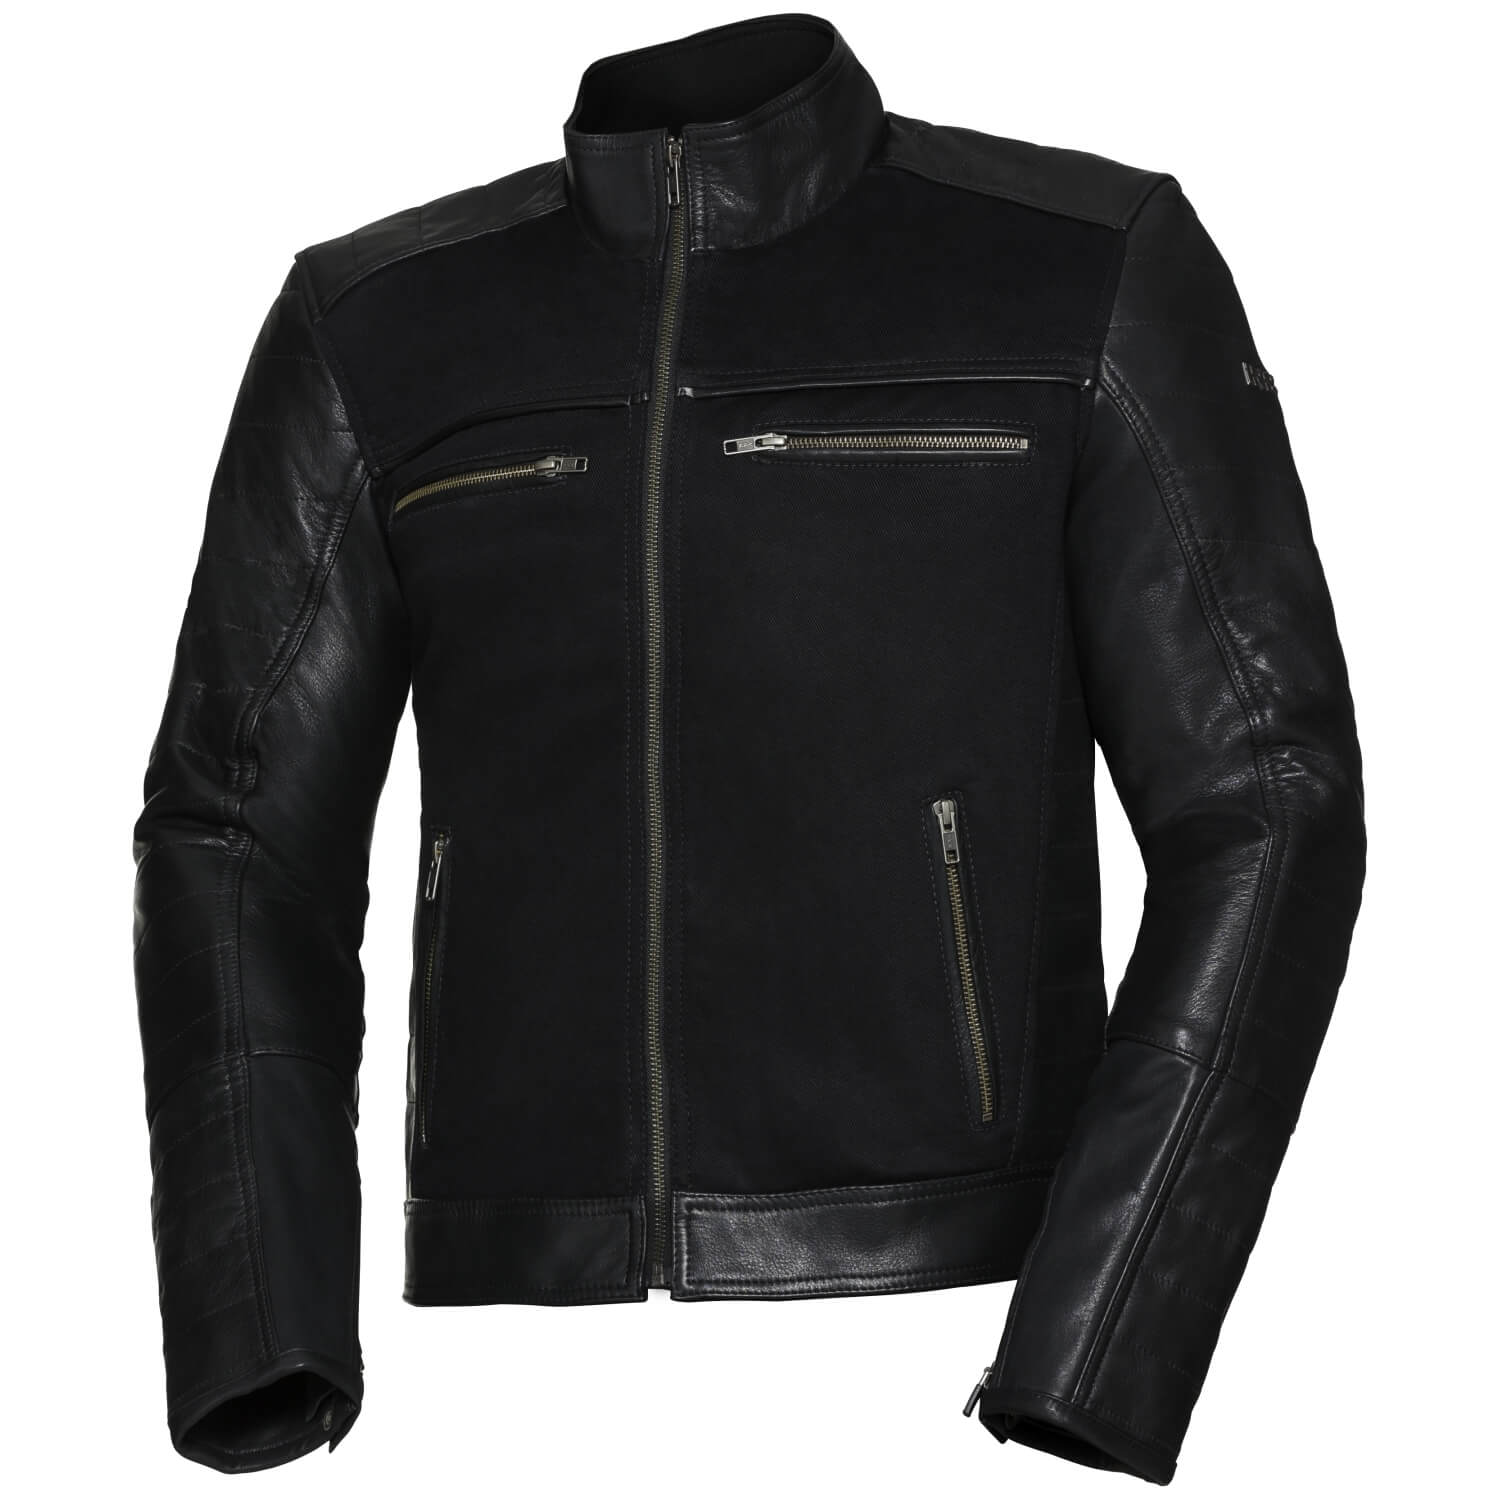 ixs jimmy herren motorradjacke classic leder textil. Black Bedroom Furniture Sets. Home Design Ideas